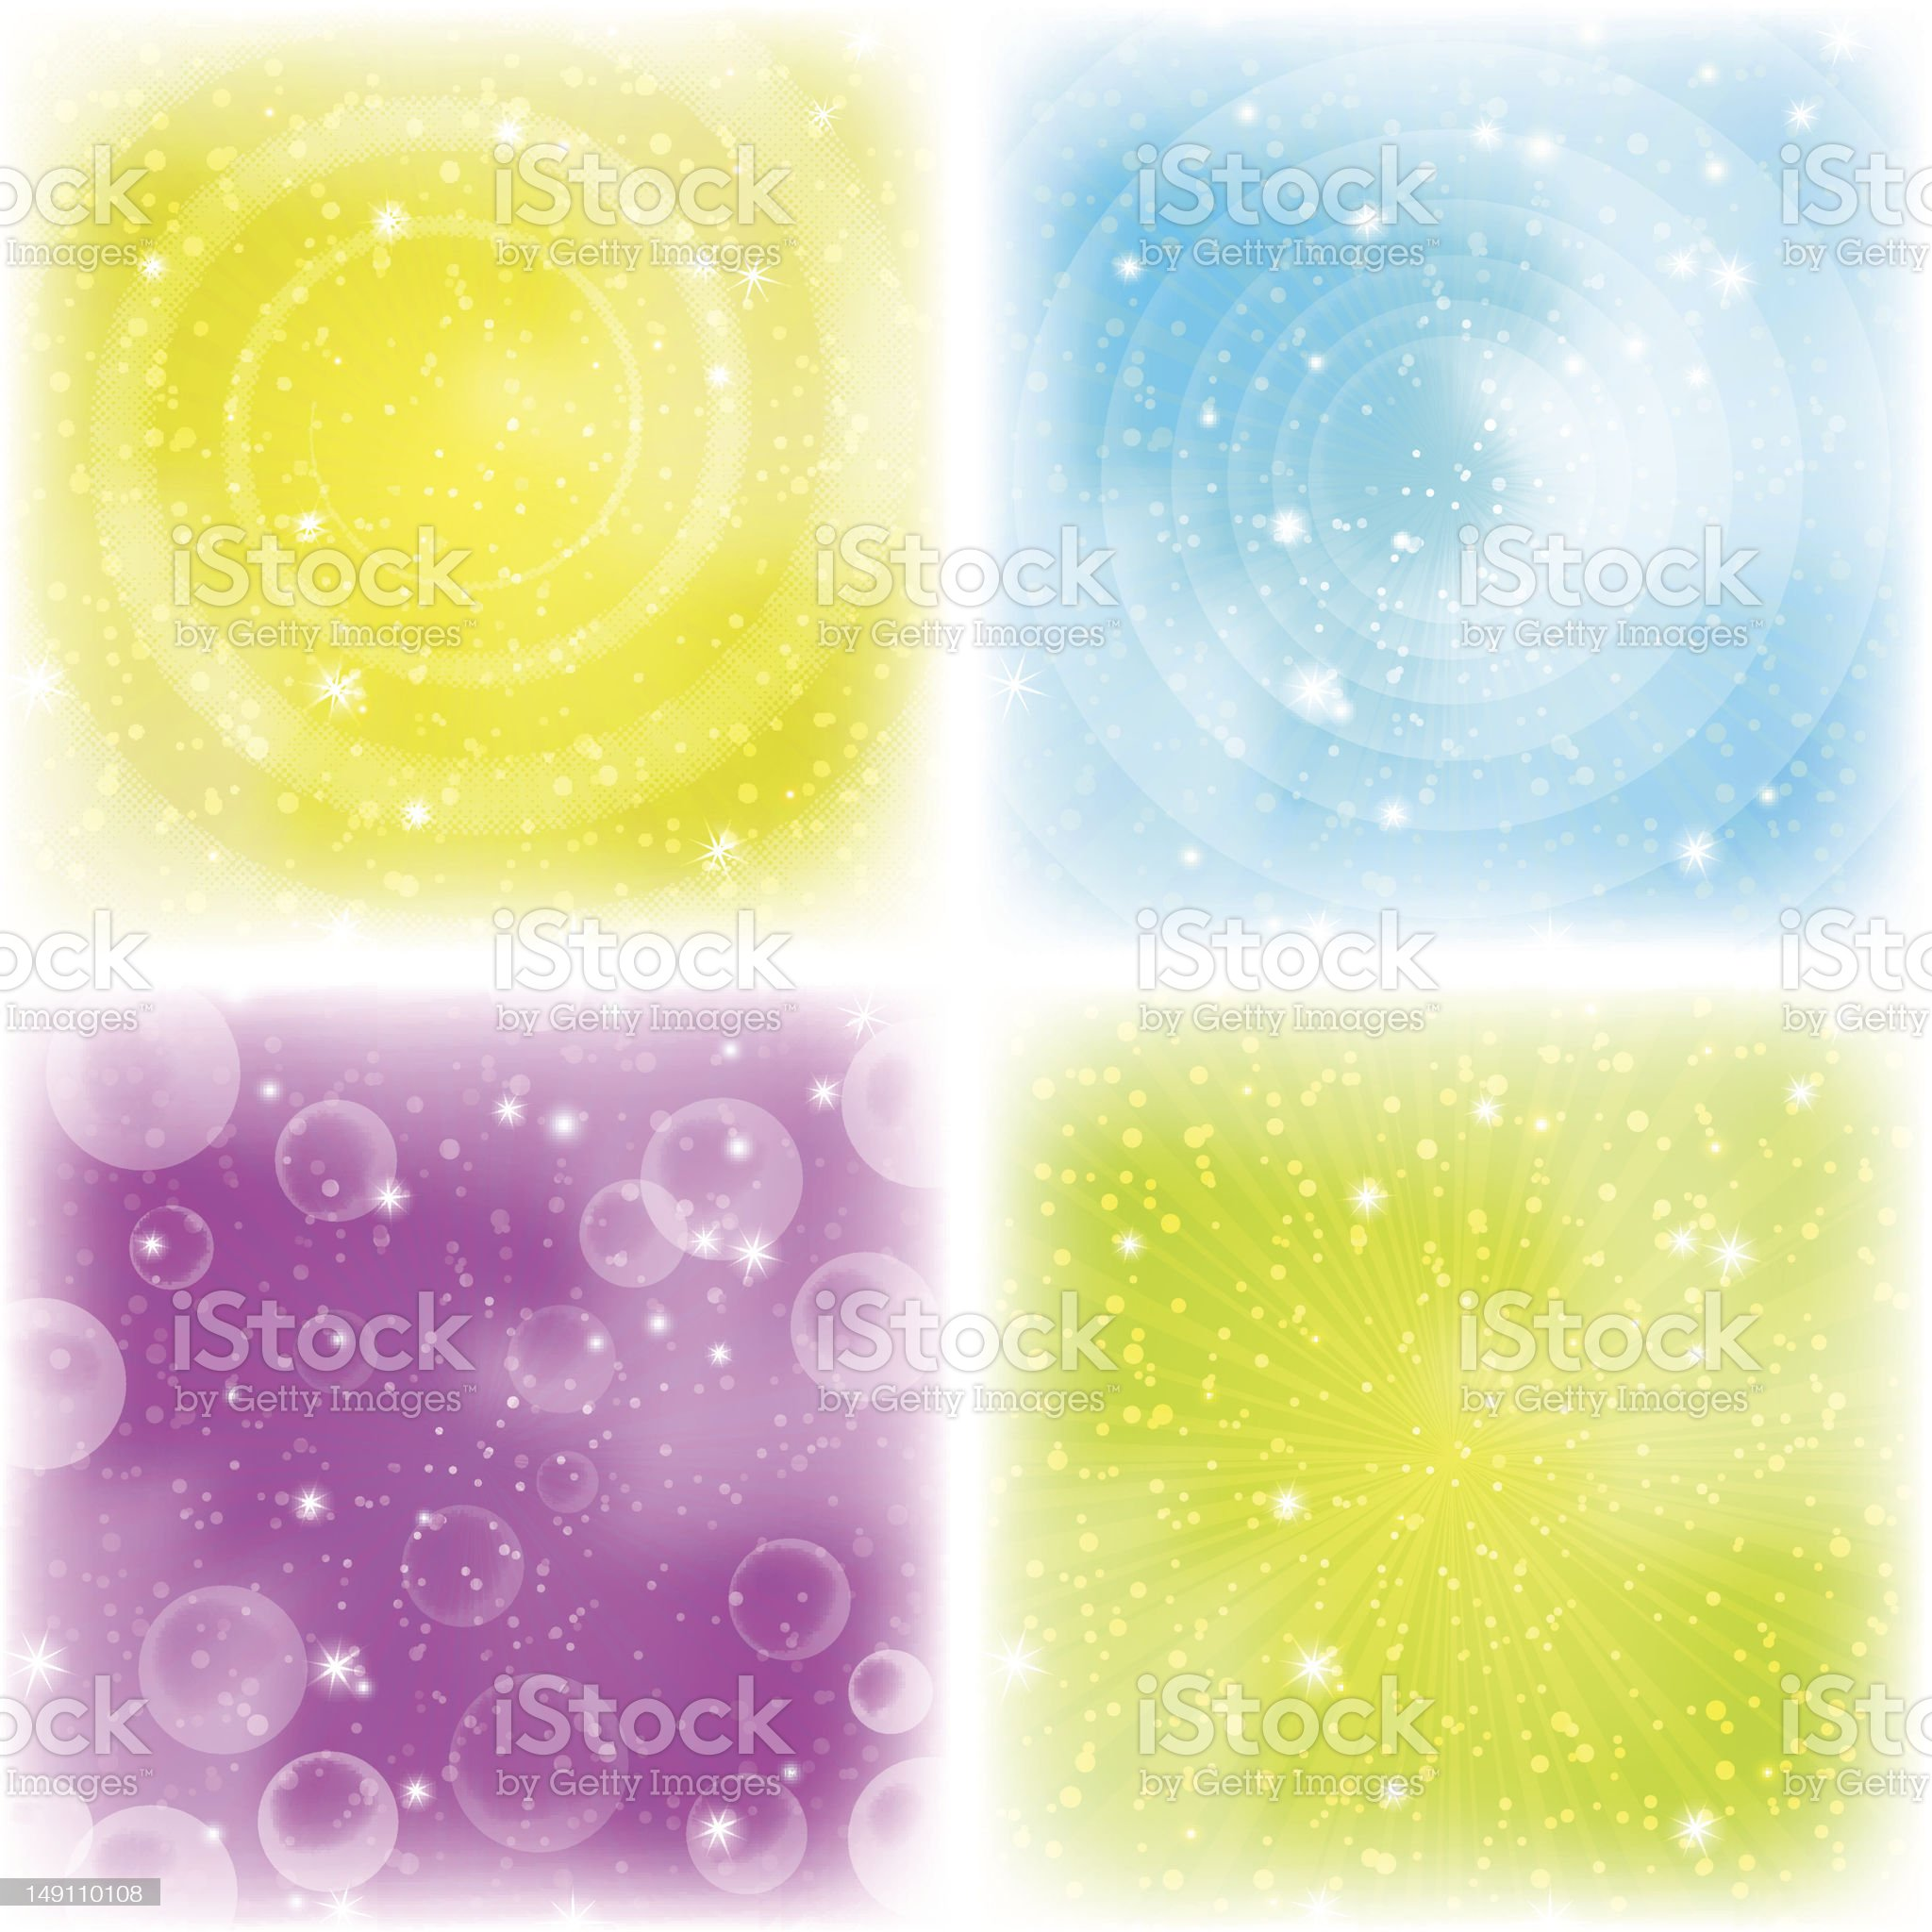 Abstract background, colorful, set royalty-free stock photo